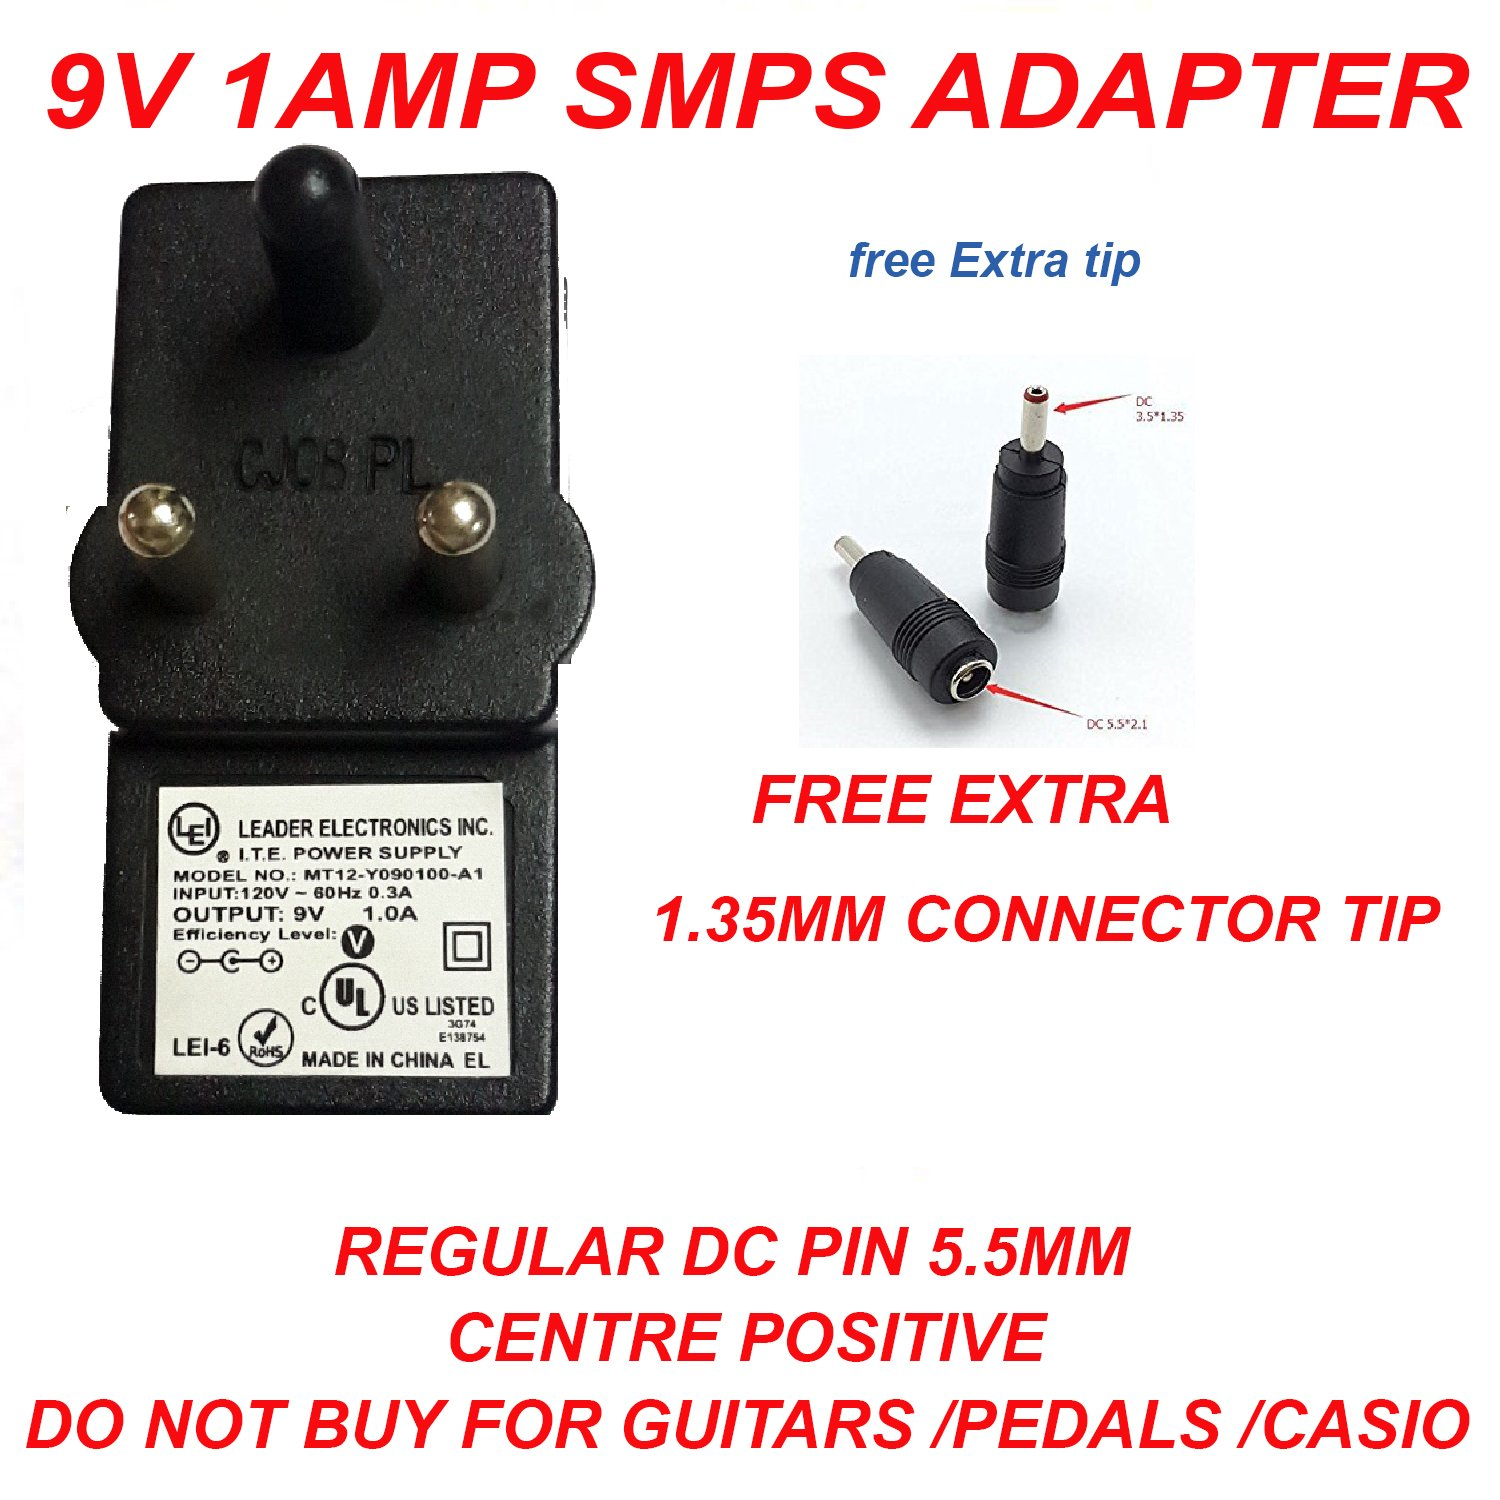 NIRMALS 9V 1AMP DC SMPS POWER SUPPLY For LED Strip: Amazon.in ...